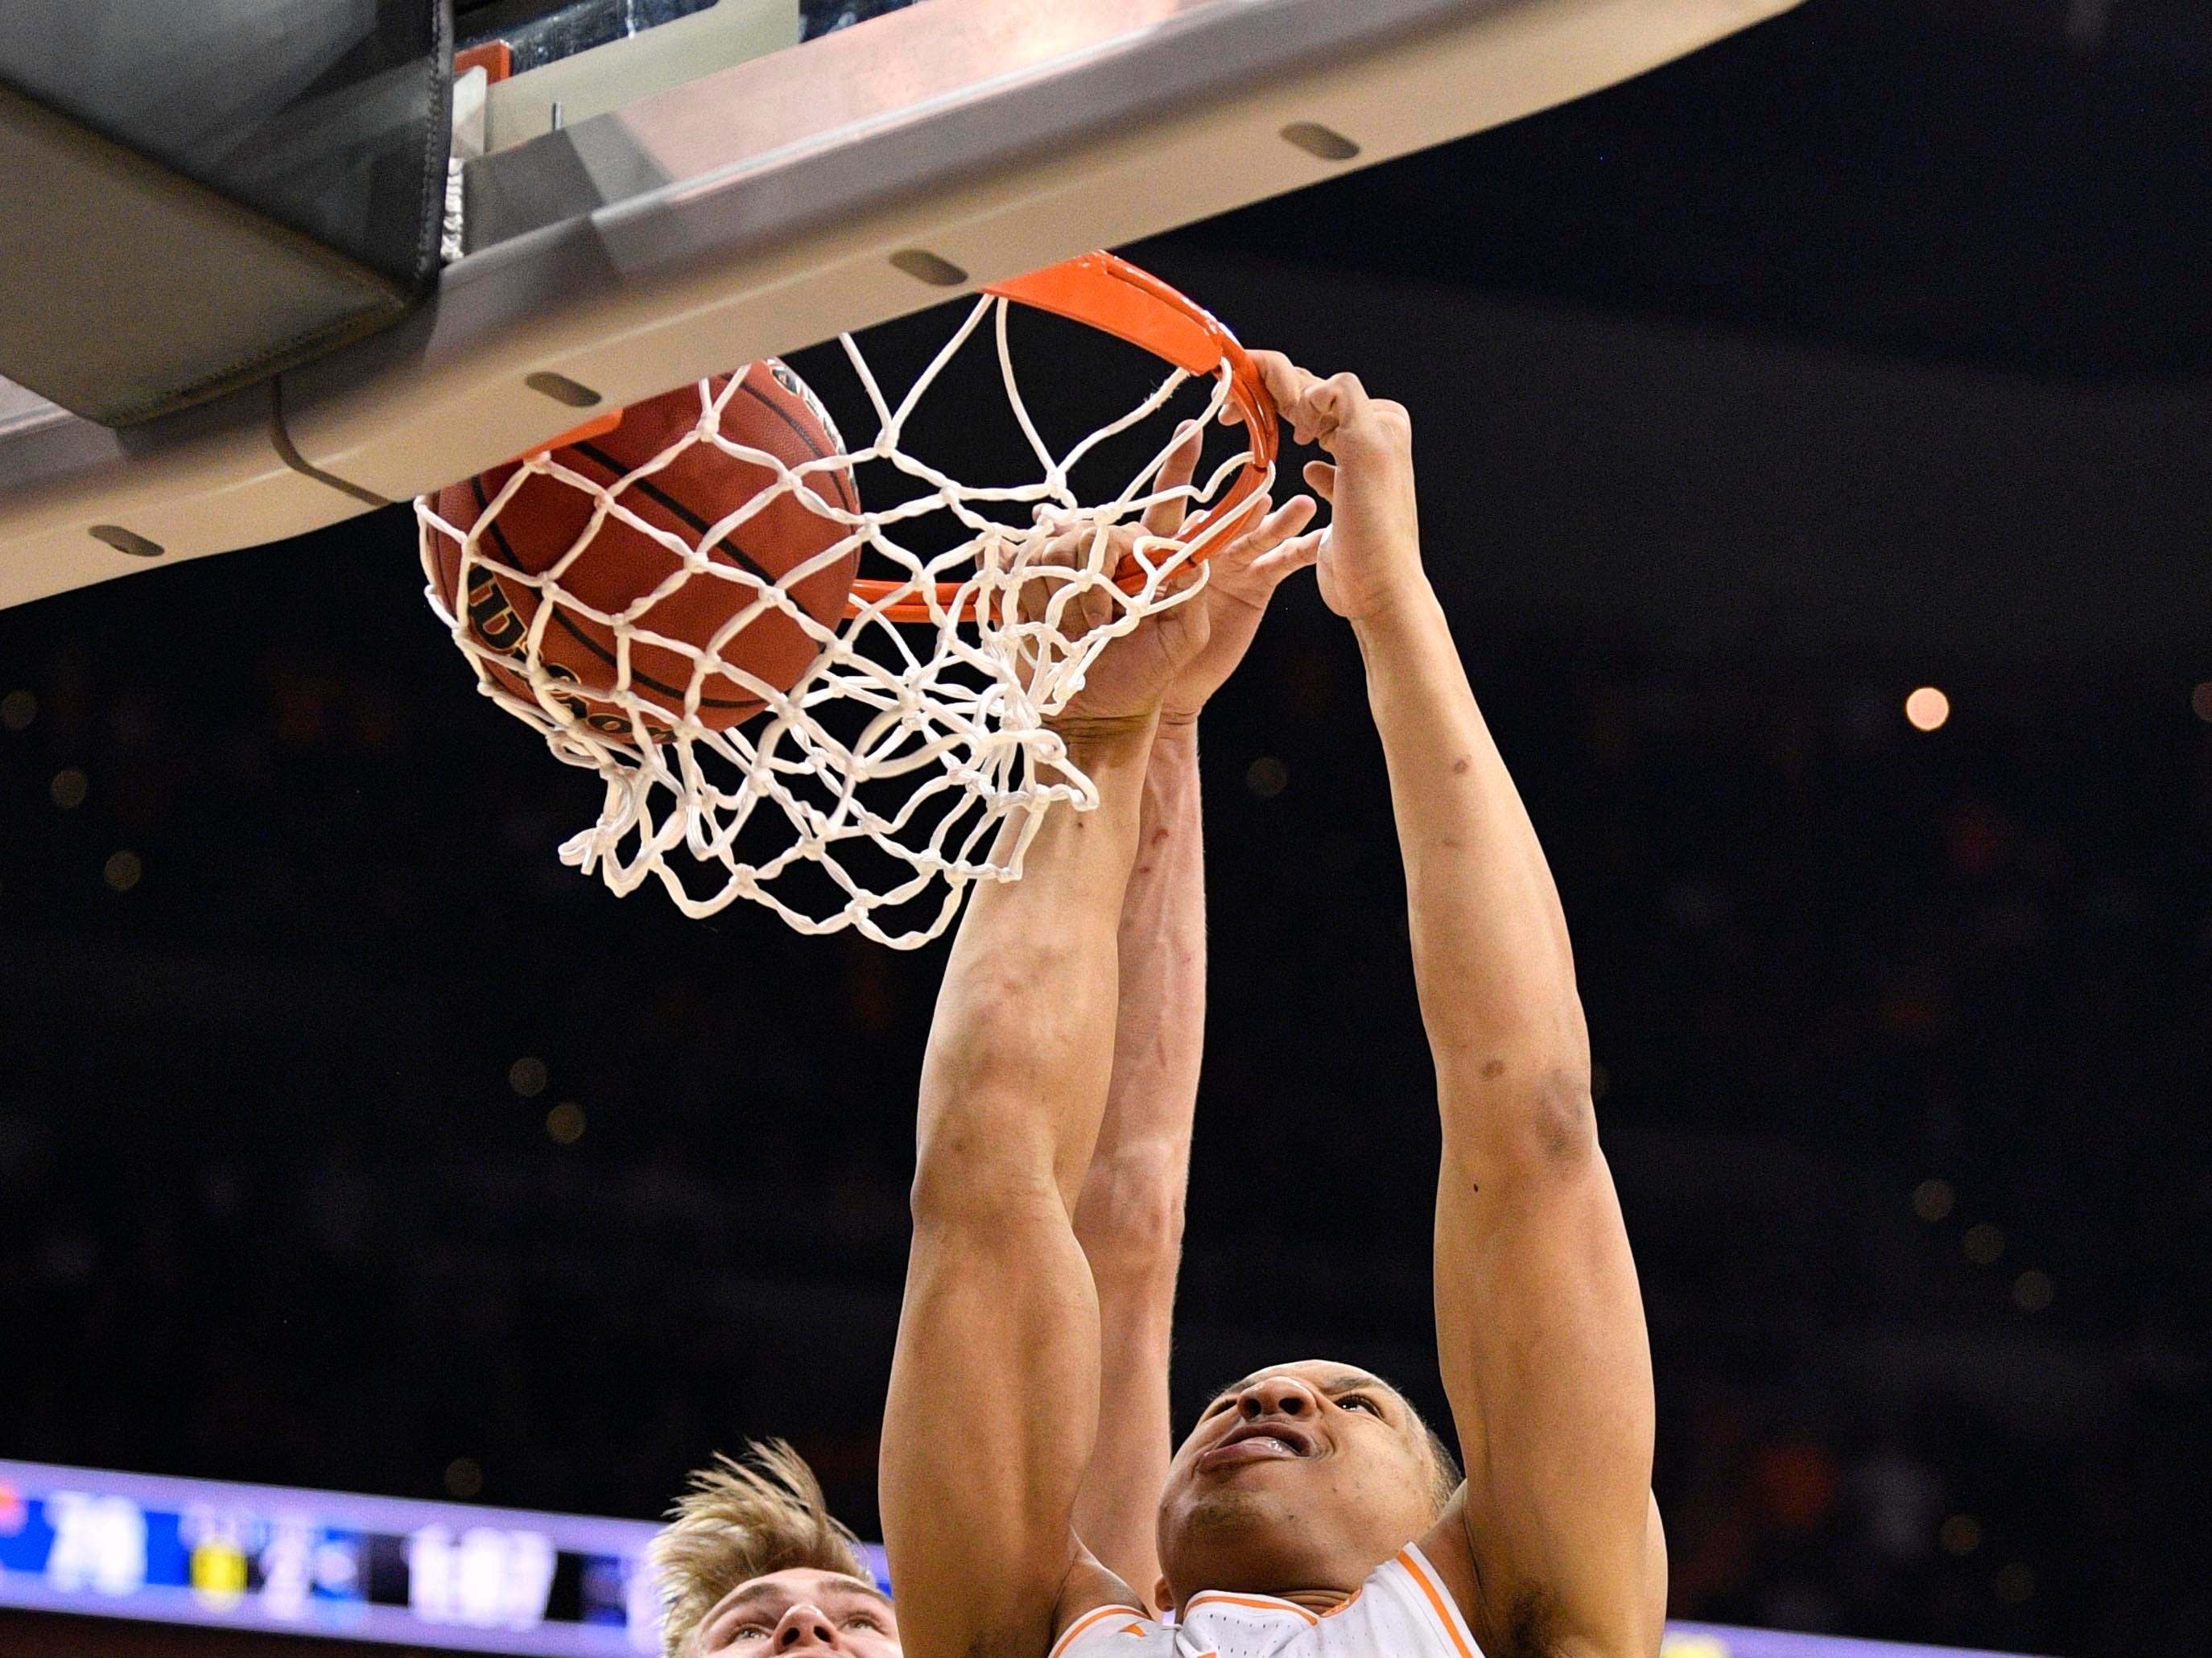 Mar 28, 2019; Louisville, KY, United States; Tennessee Volunteers forward Grant Williams (2) dunks as Purdue Boilermakers center Matt Haarms (32) defends during the second half in the semifinals of the south regional of the 2019 NCAA Tournament at KFC Yum Center. Mandatory Credit: Jamie Rhodes-USA TODAY Sports